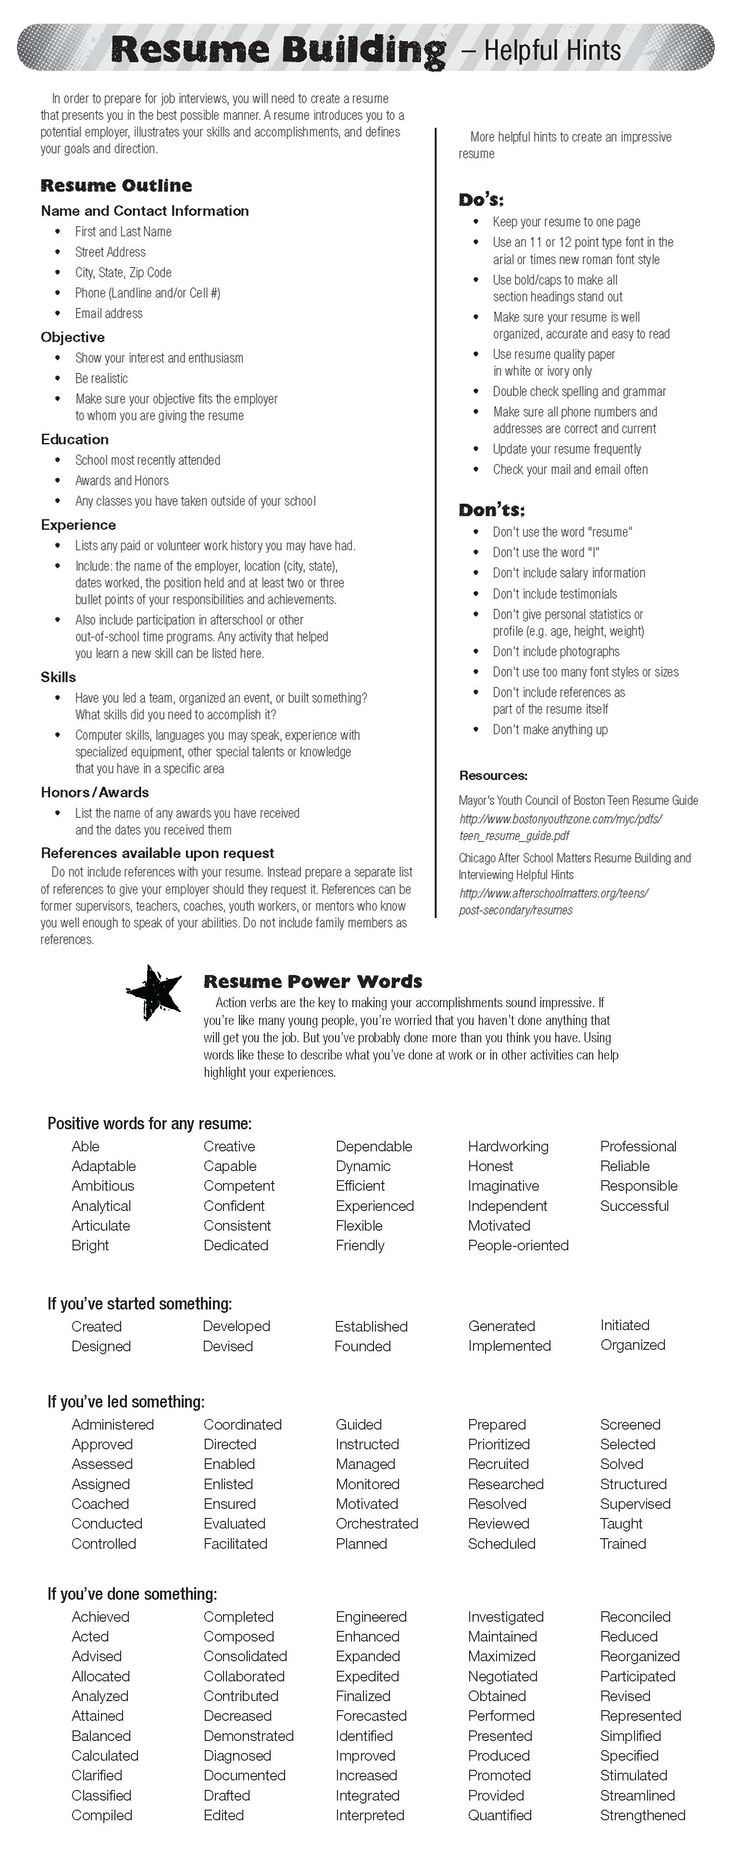 Picnictoimpeachus  Surprising  Ideas About Resume On Pinterest  Cv Format Resume Cv And  With Extraordinary  Ideas About Resume On Pinterest  Cv Format Resume Cv And Resume Templates With Archaic How To Create Resume Also Resume How To In Addition Margins For Resume And Profile On Resume As Well As Design Resumes Additionally Cover Letter Template For Resume From Pinterestcom With Picnictoimpeachus  Extraordinary  Ideas About Resume On Pinterest  Cv Format Resume Cv And  With Archaic  Ideas About Resume On Pinterest  Cv Format Resume Cv And Resume Templates And Surprising How To Create Resume Also Resume How To In Addition Margins For Resume From Pinterestcom